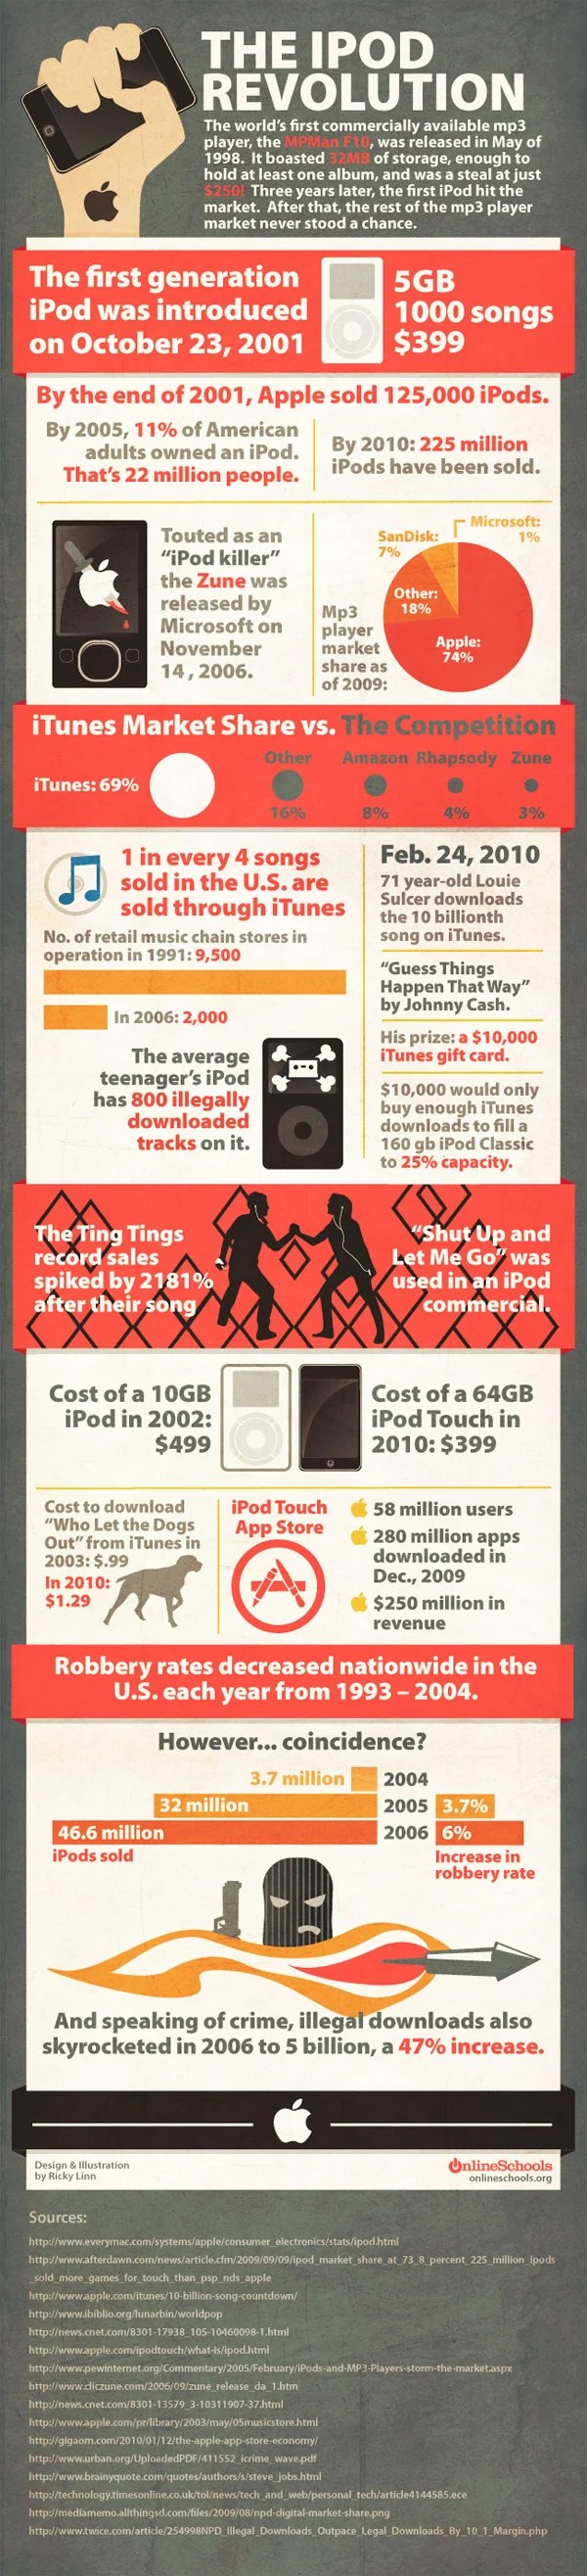 ipod_revolution_infographic